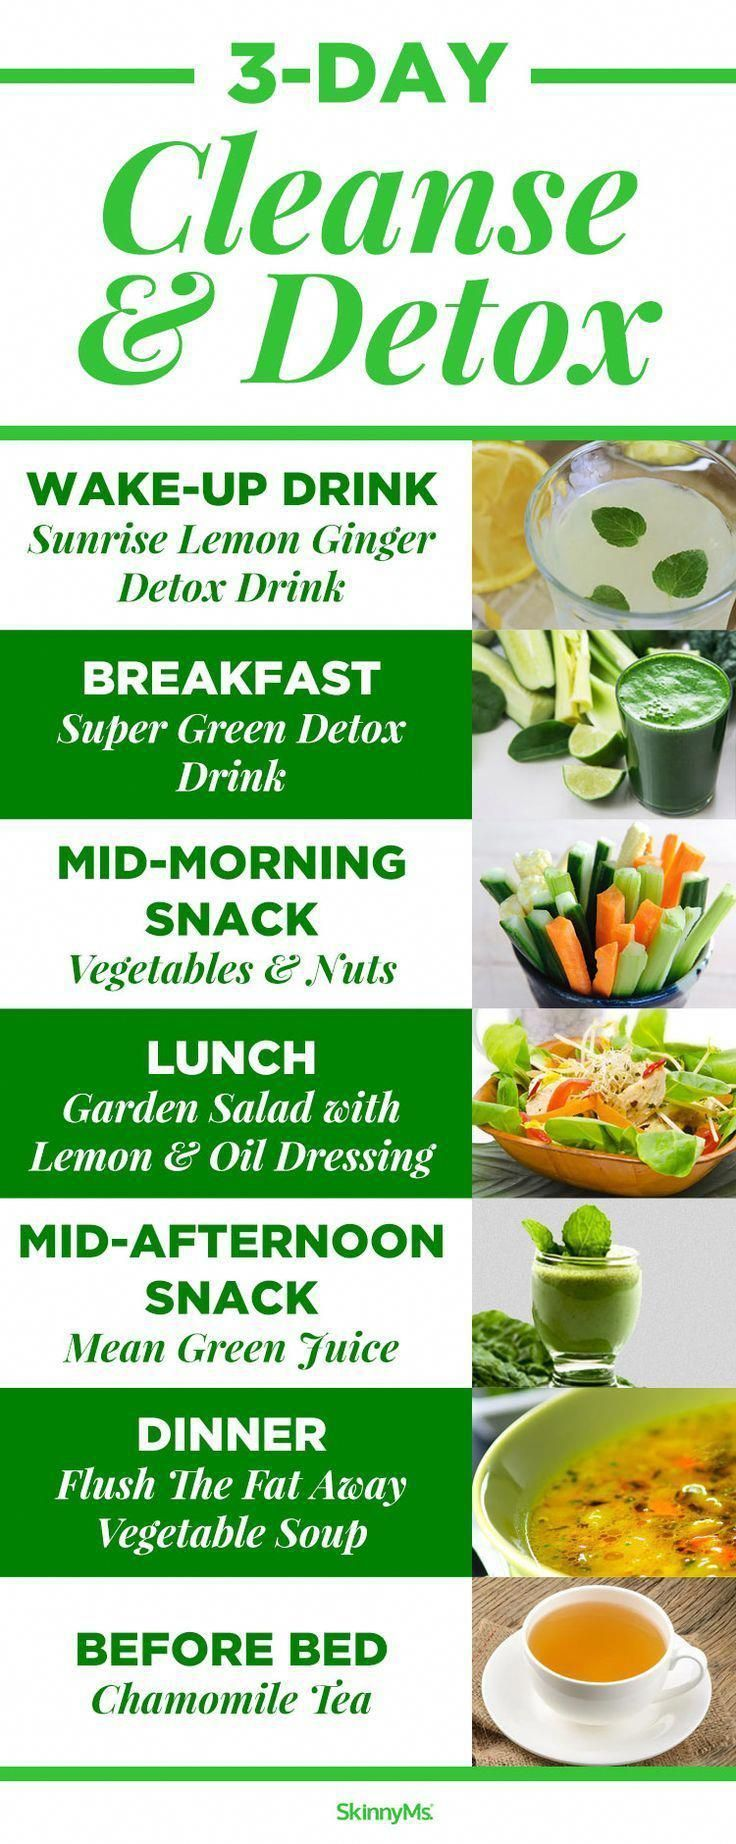 Photo of When I need to recharge my body I love the 3 Day Cleanse Detox…it is amazing!|…